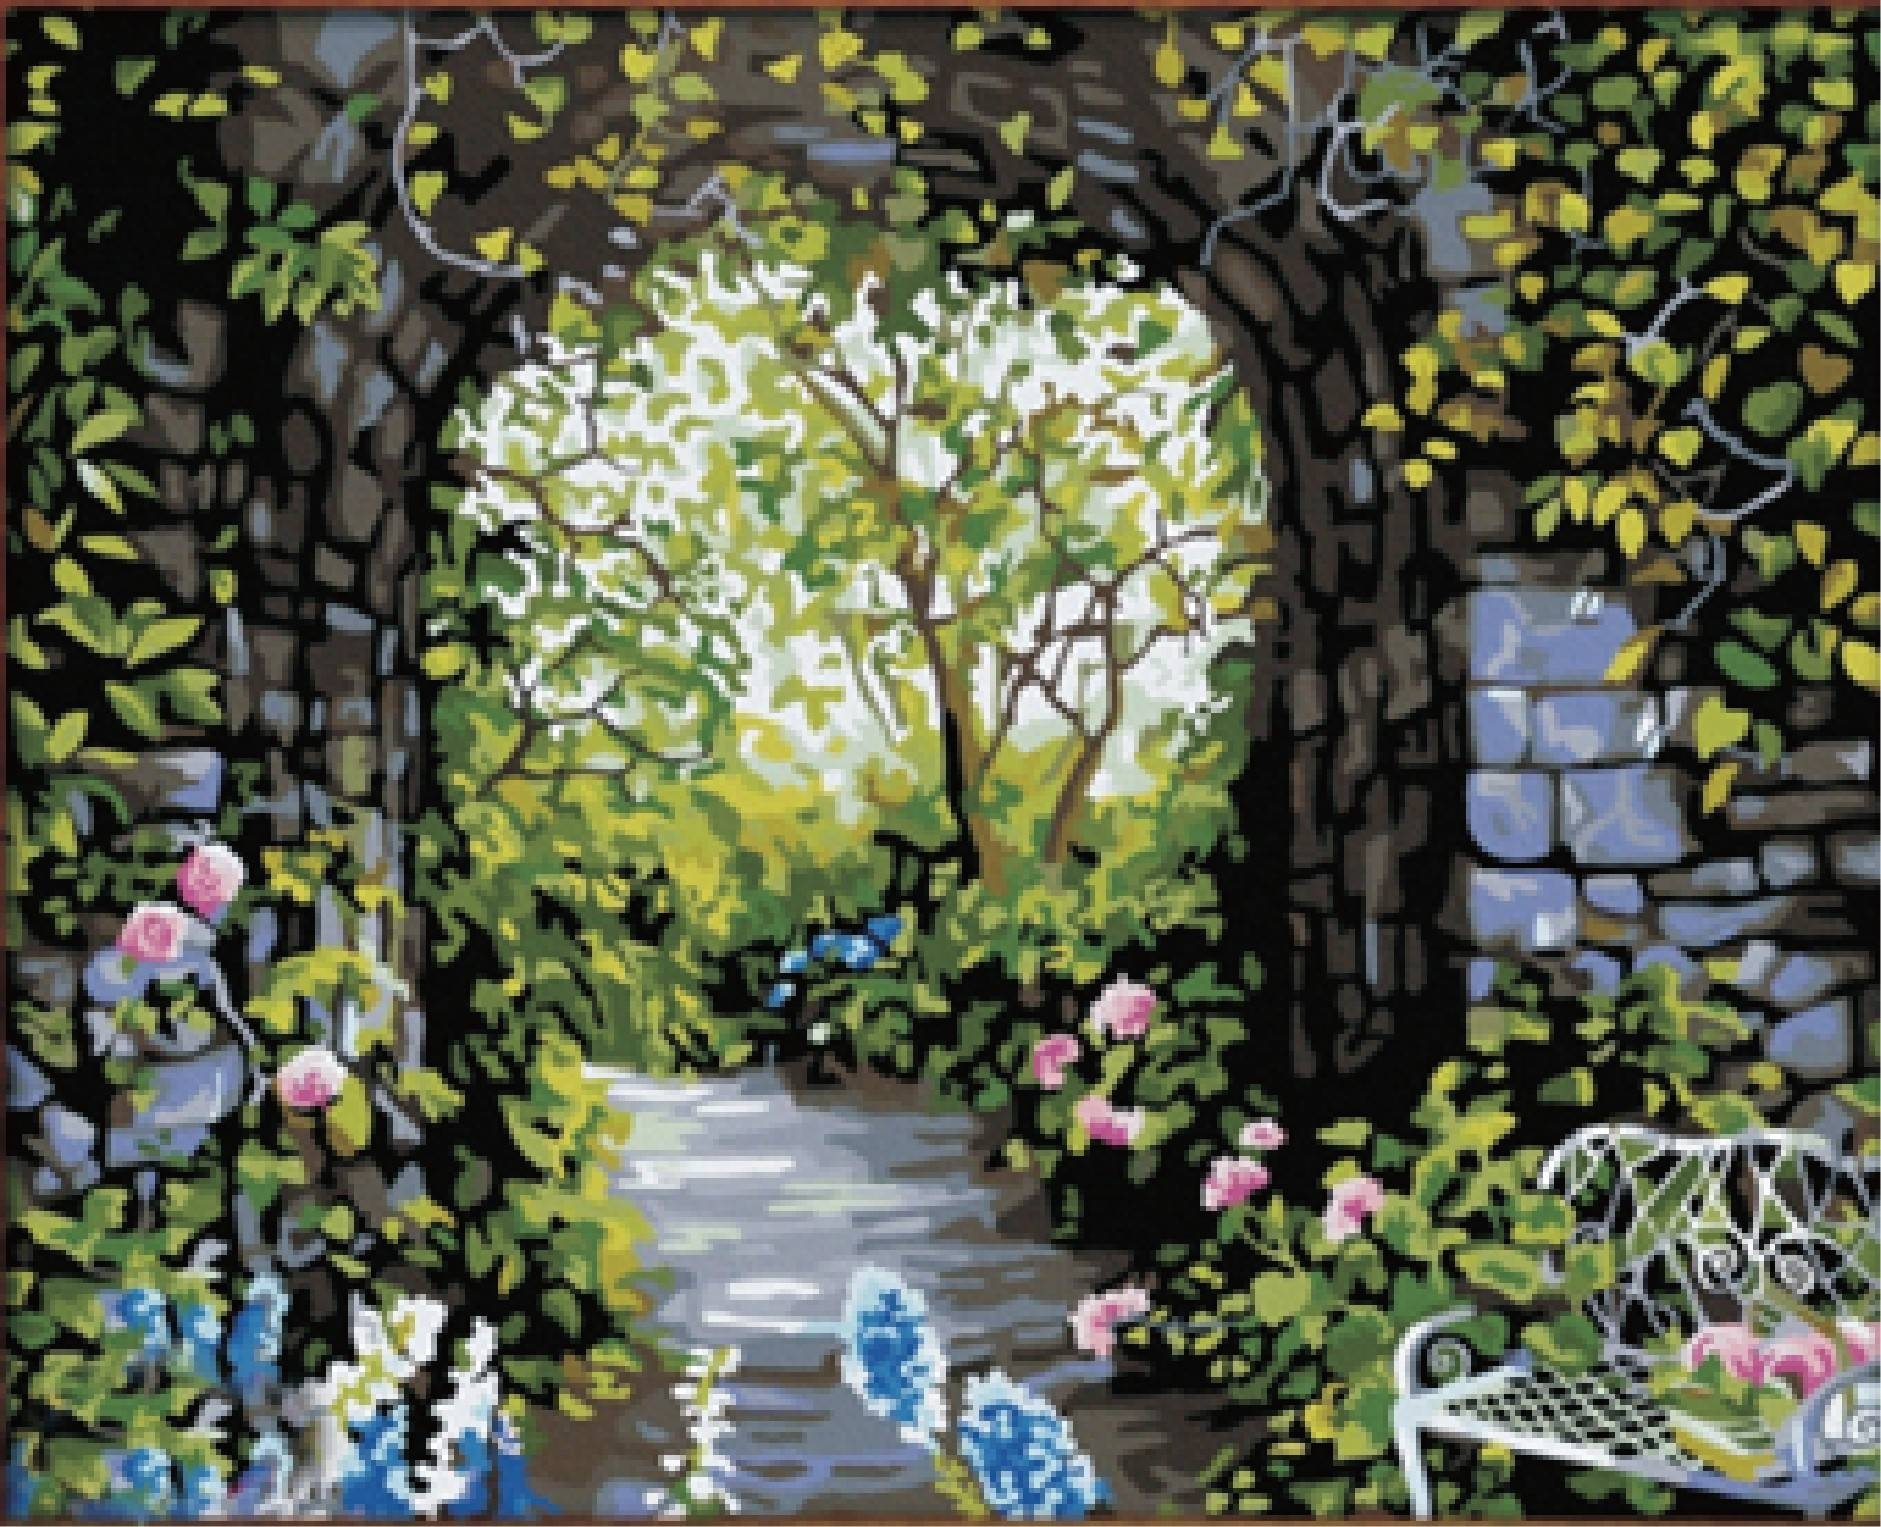 Painting Scenery Digital Canvasnumbers Picture Decor Diy Oil With Regard To Best And Newest Diy Garden Wall Art (View 10 of 25)